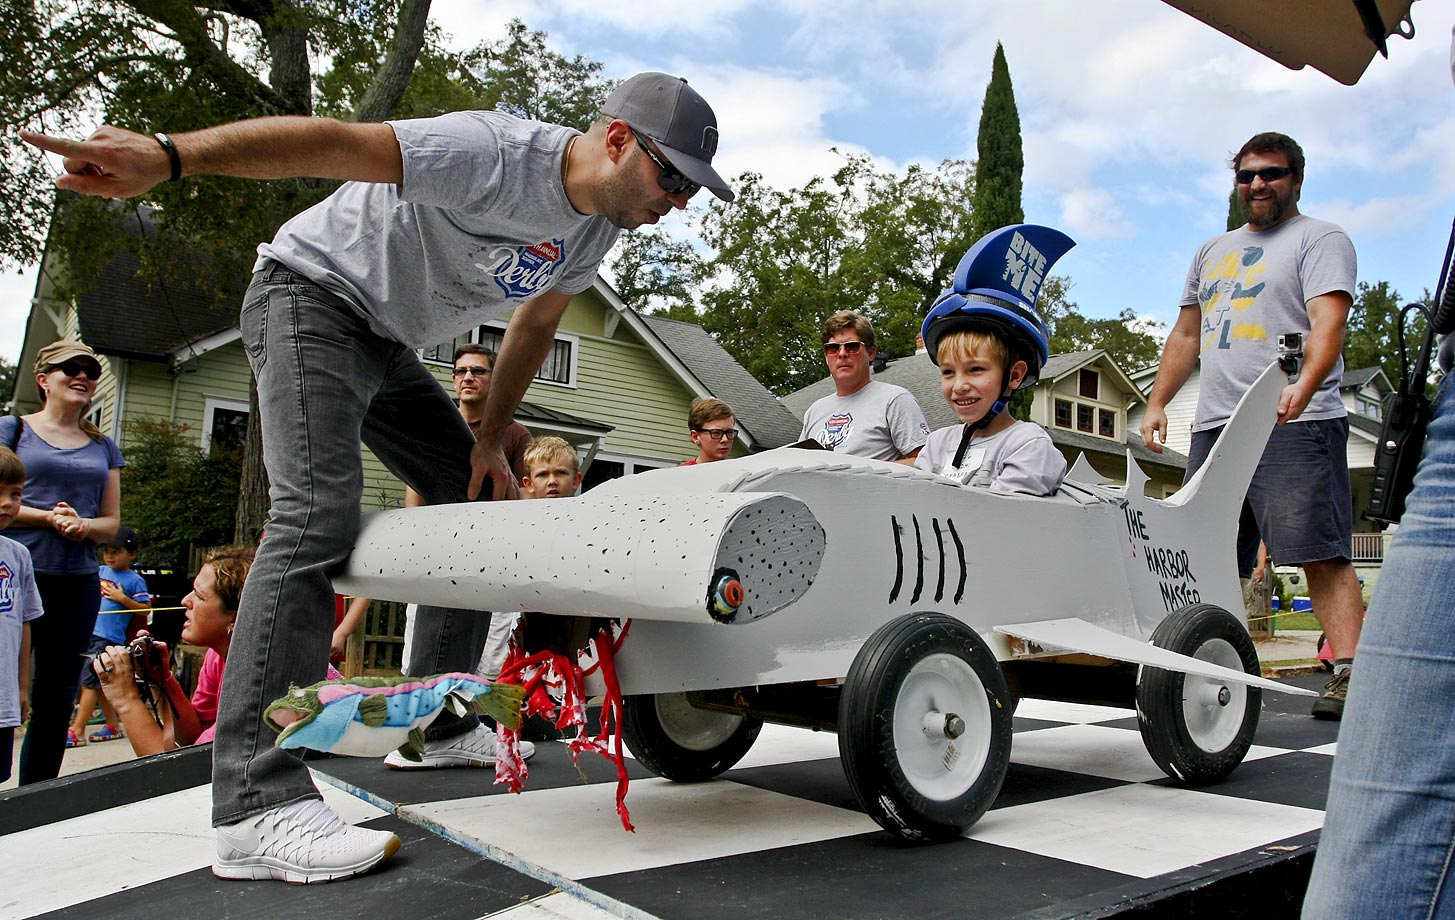 A hammerhead shark-shaped vehicle during the Madison Ave. Soapbox Derby.